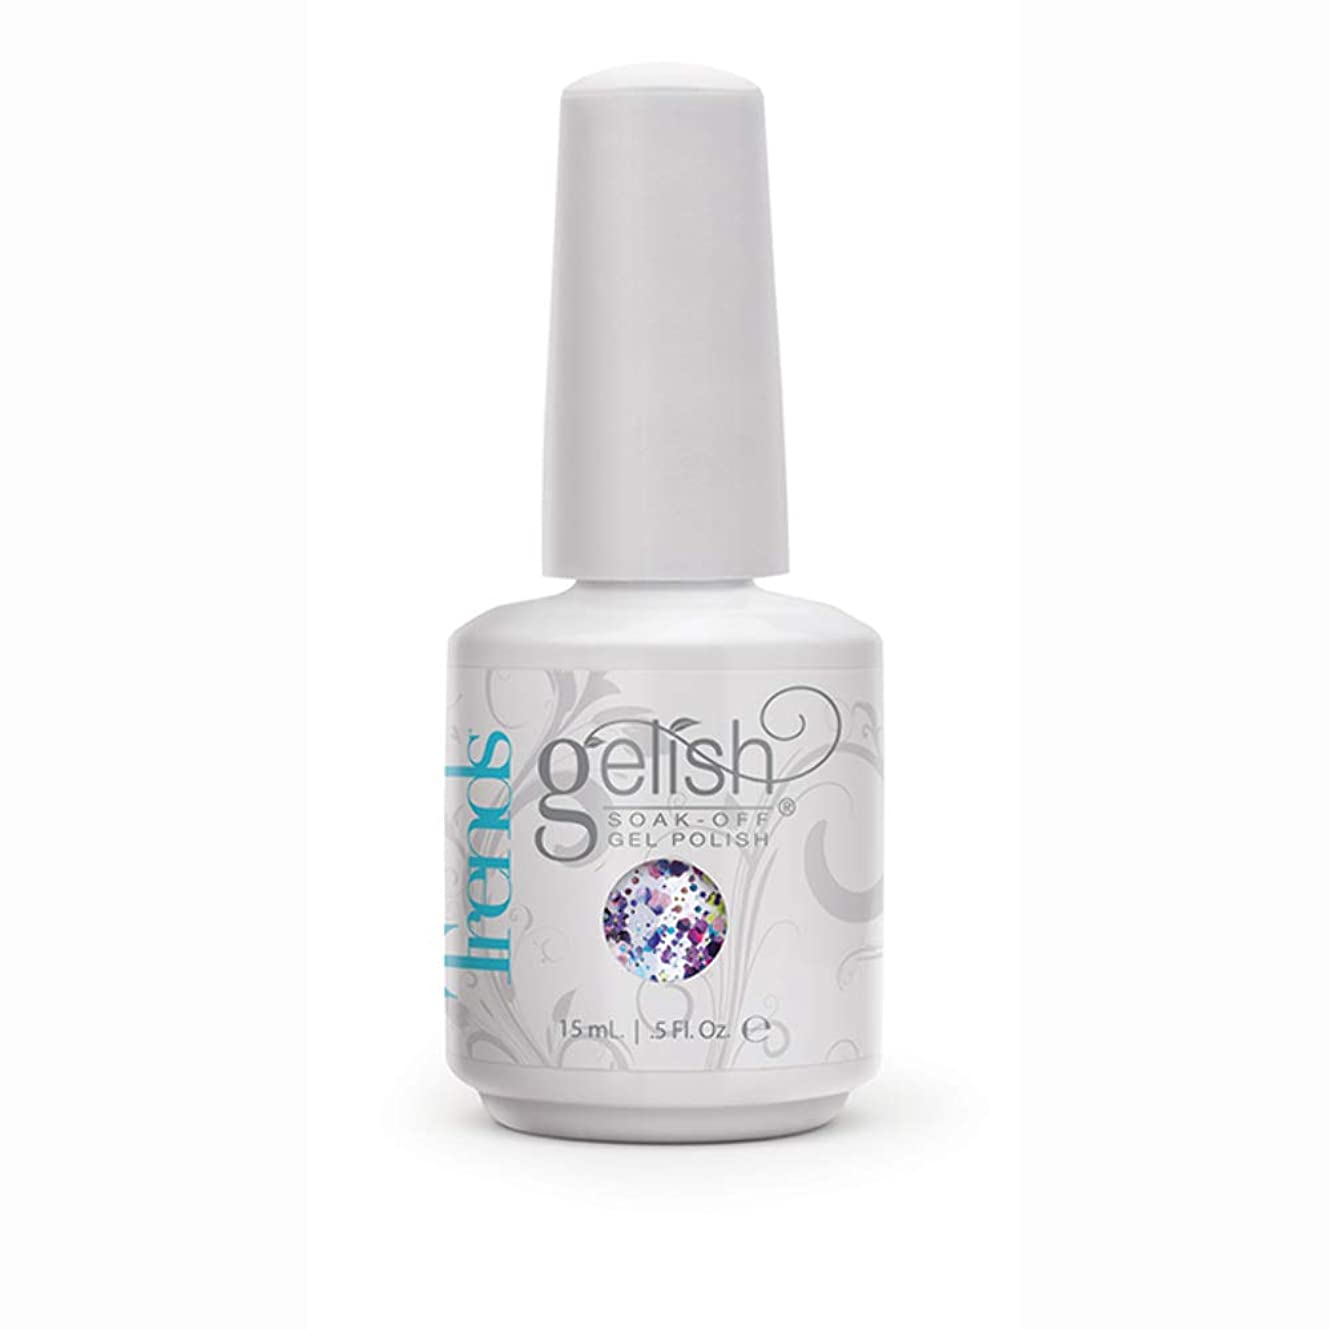 パケット失望最初にHarmony Gelish Gel Polish - Looking Glass - 0.5oz / 15ml